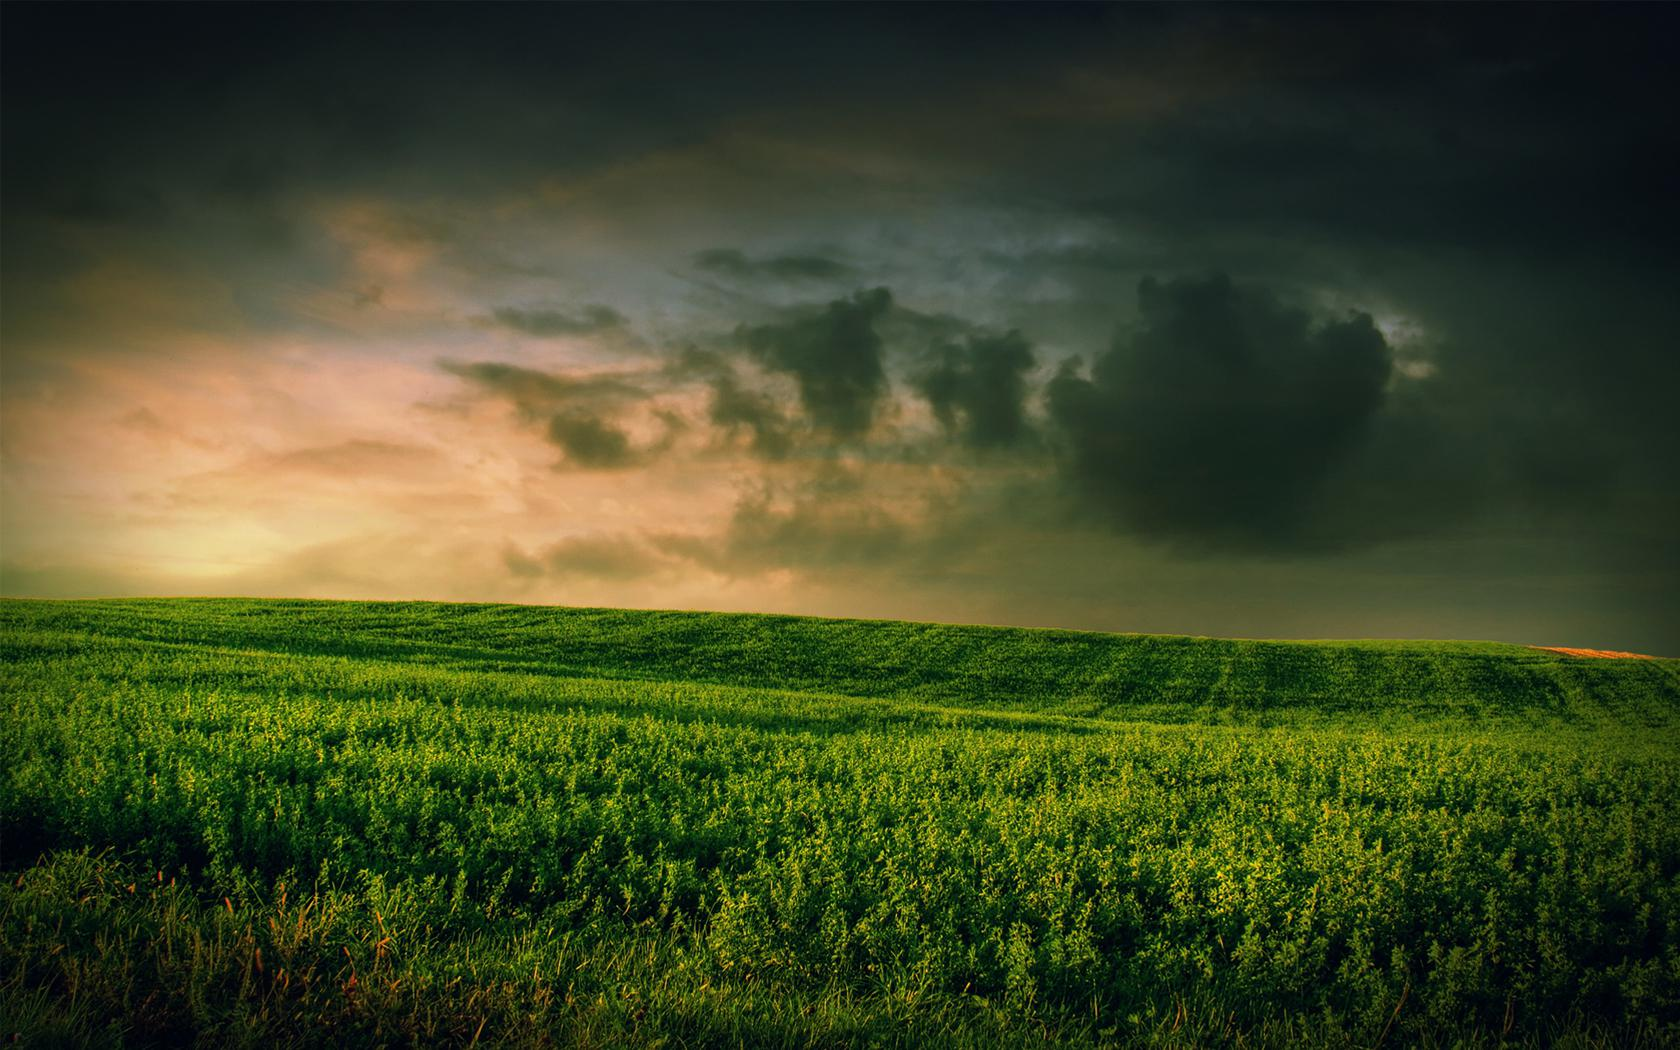 1366x768 hd desktop wallpapers country - photo #48